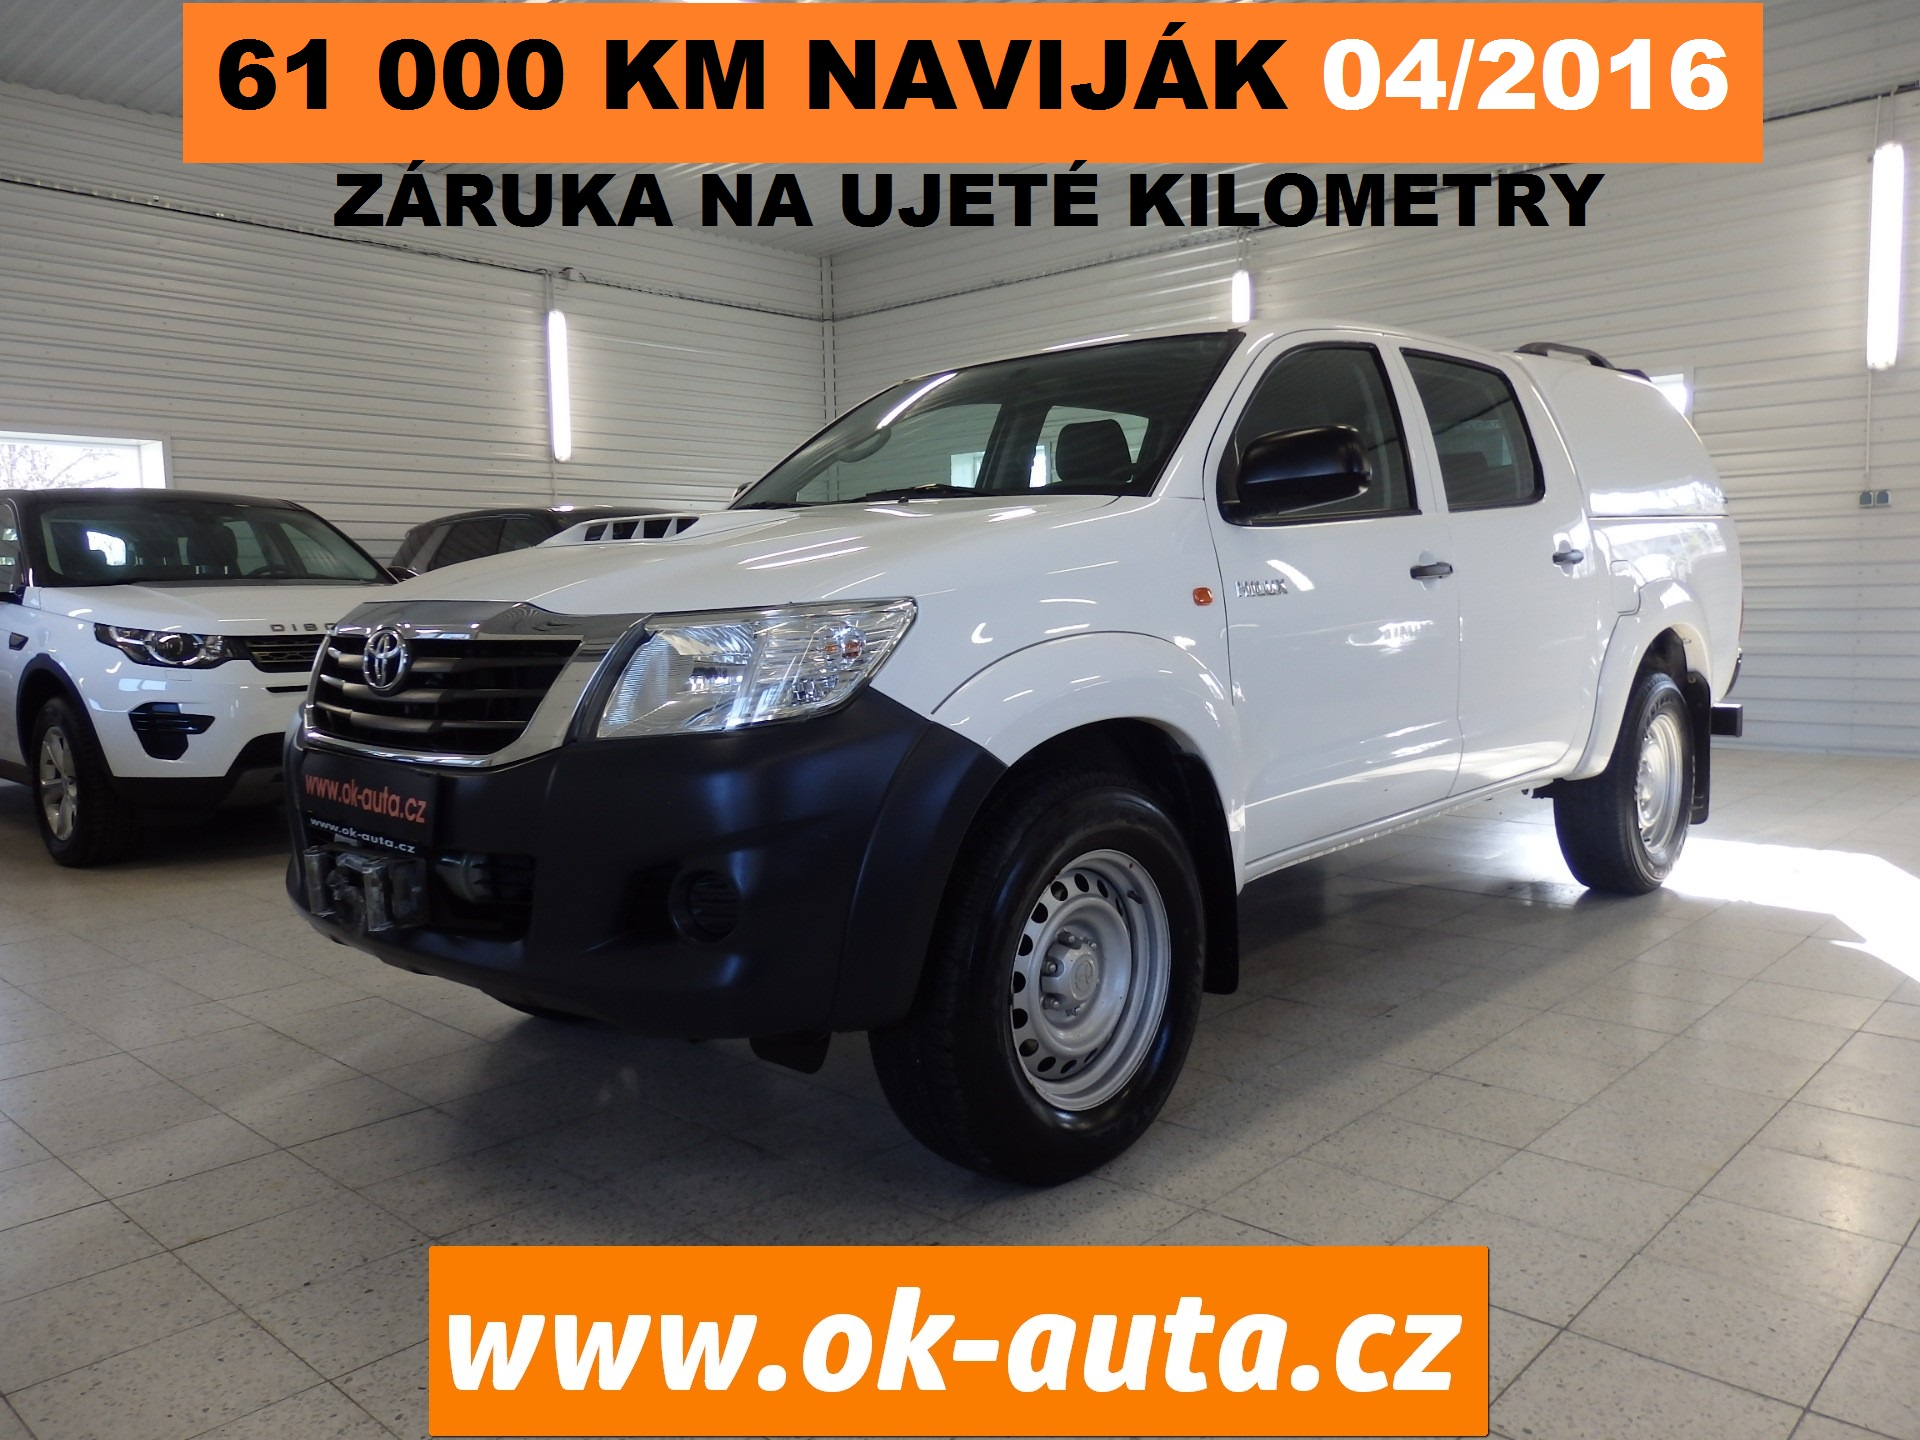 Toyota Hilux 2.5 Double Cab Hartop 04/2016